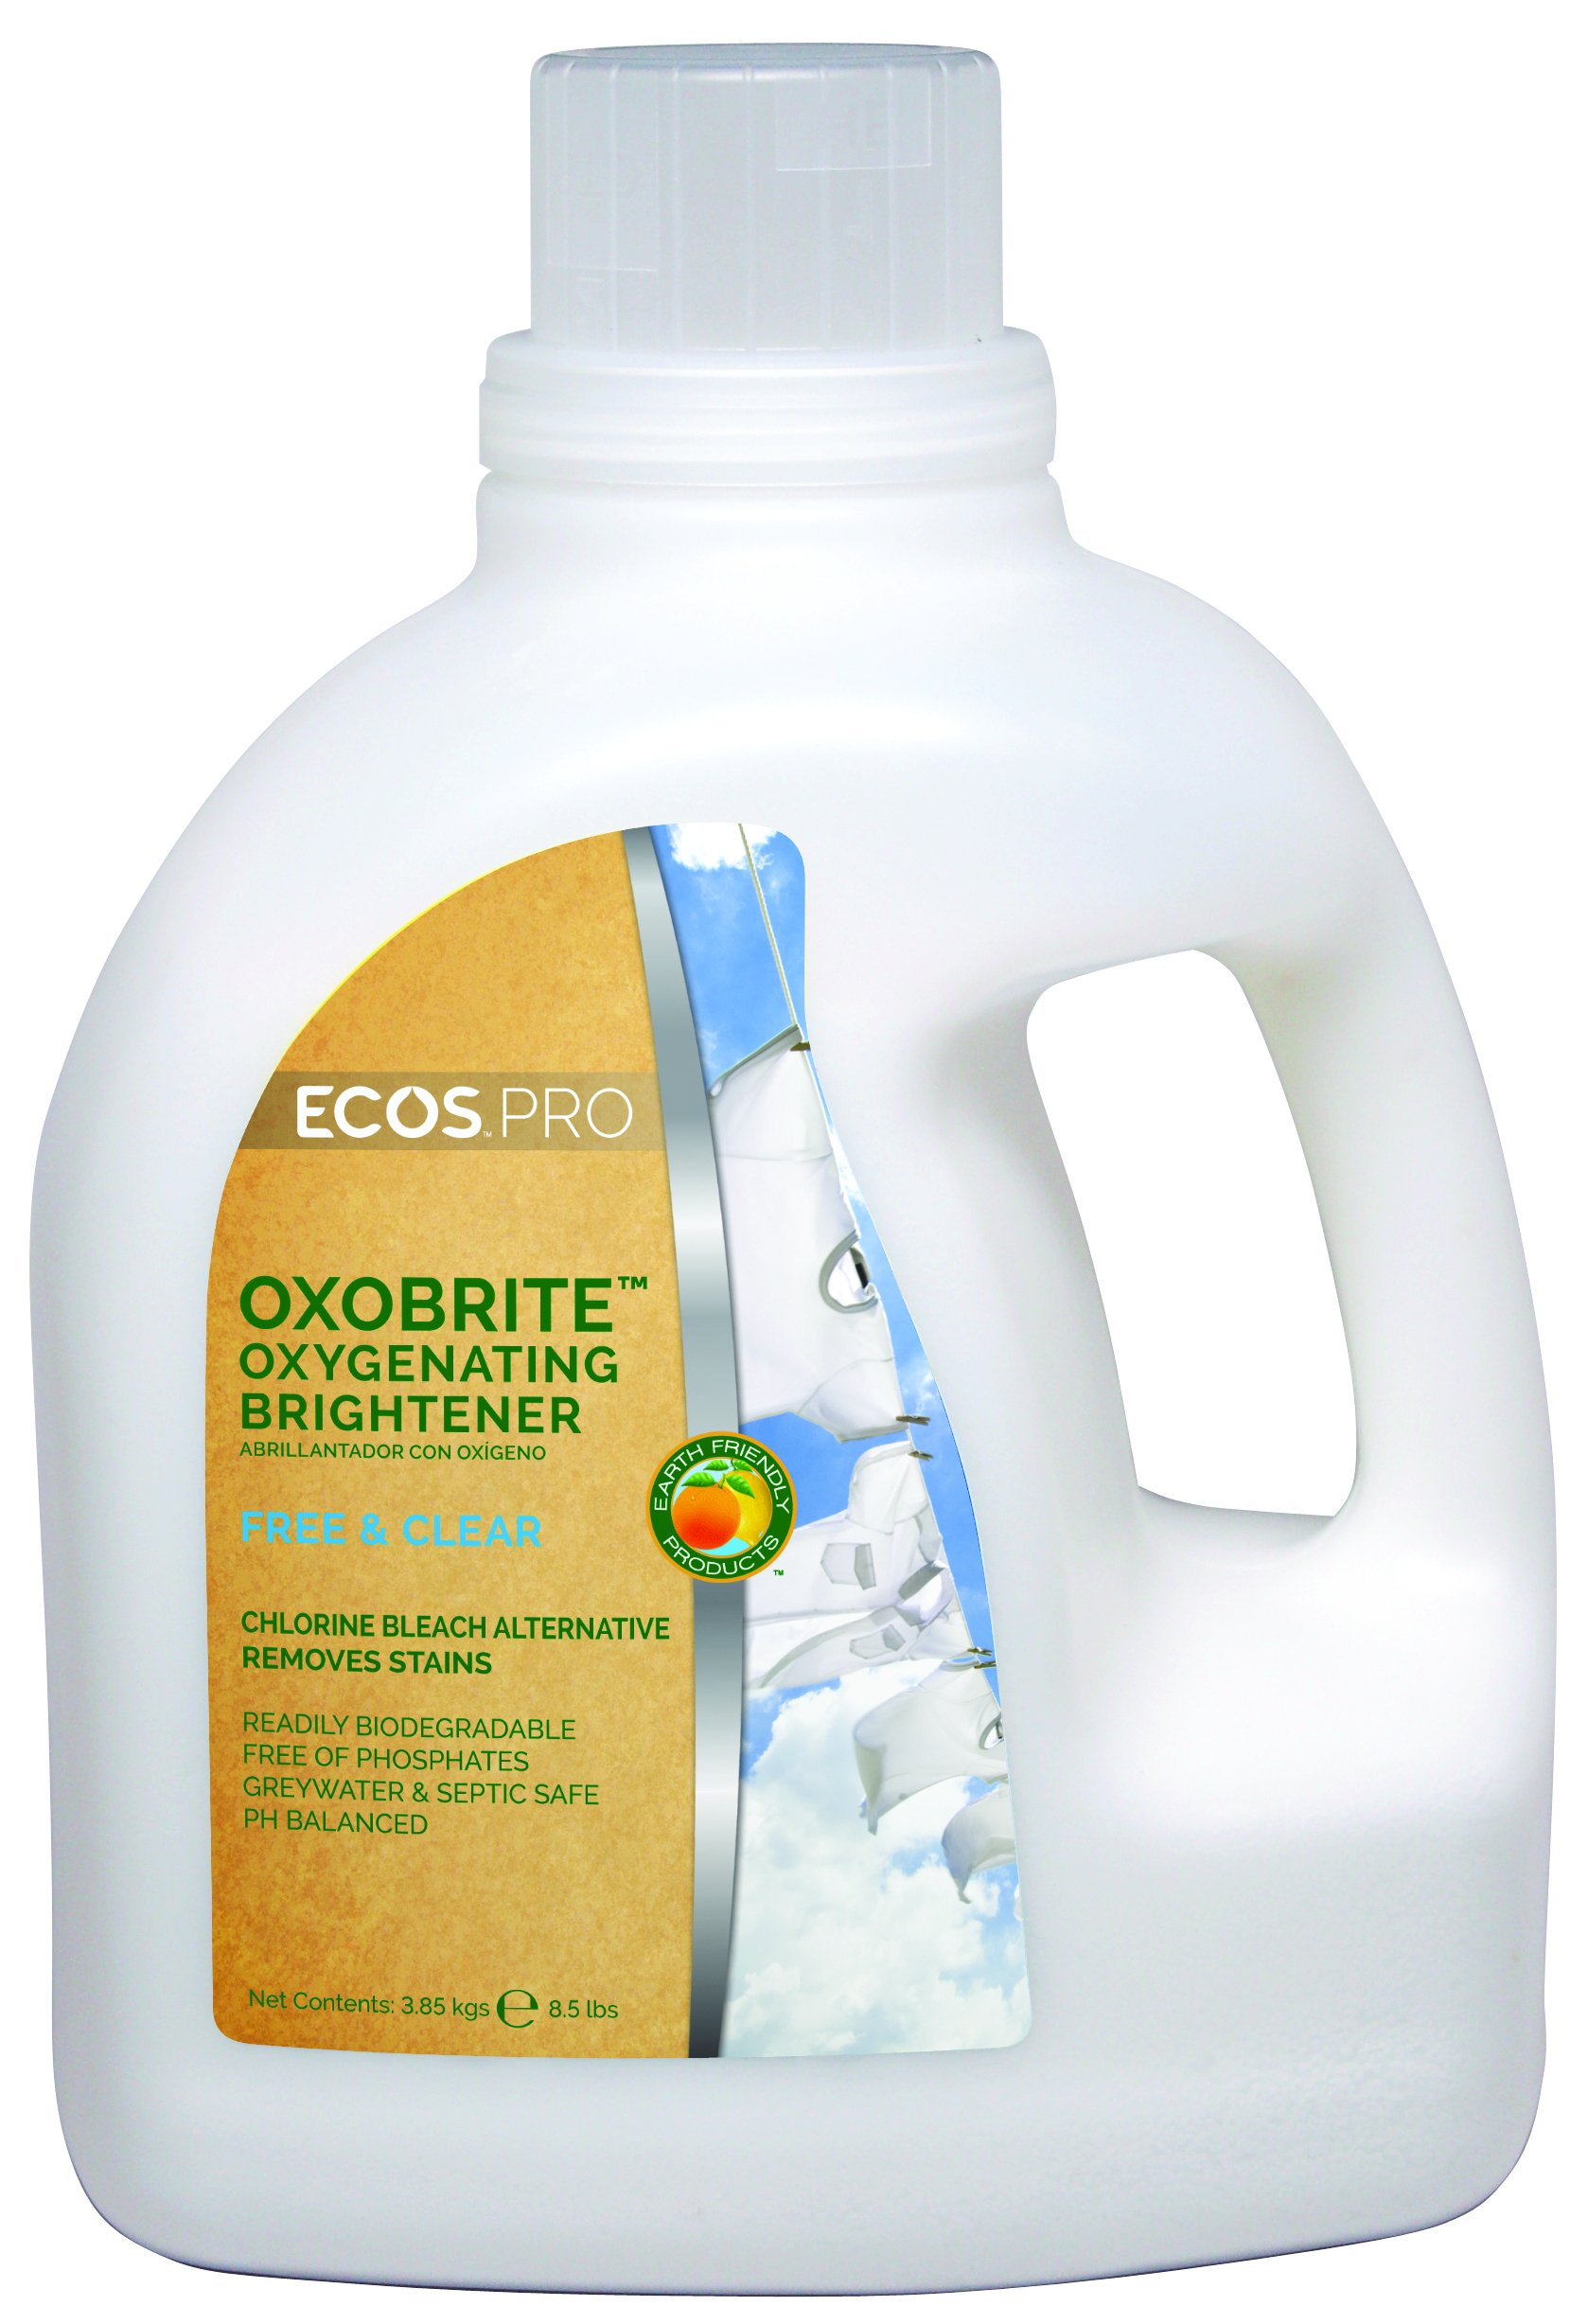 Earth Friendly Products Proline PL9892/04 OxoBrite Oxygenating Whitener and Brightener, 8.5lbs Handle (Case of 4)